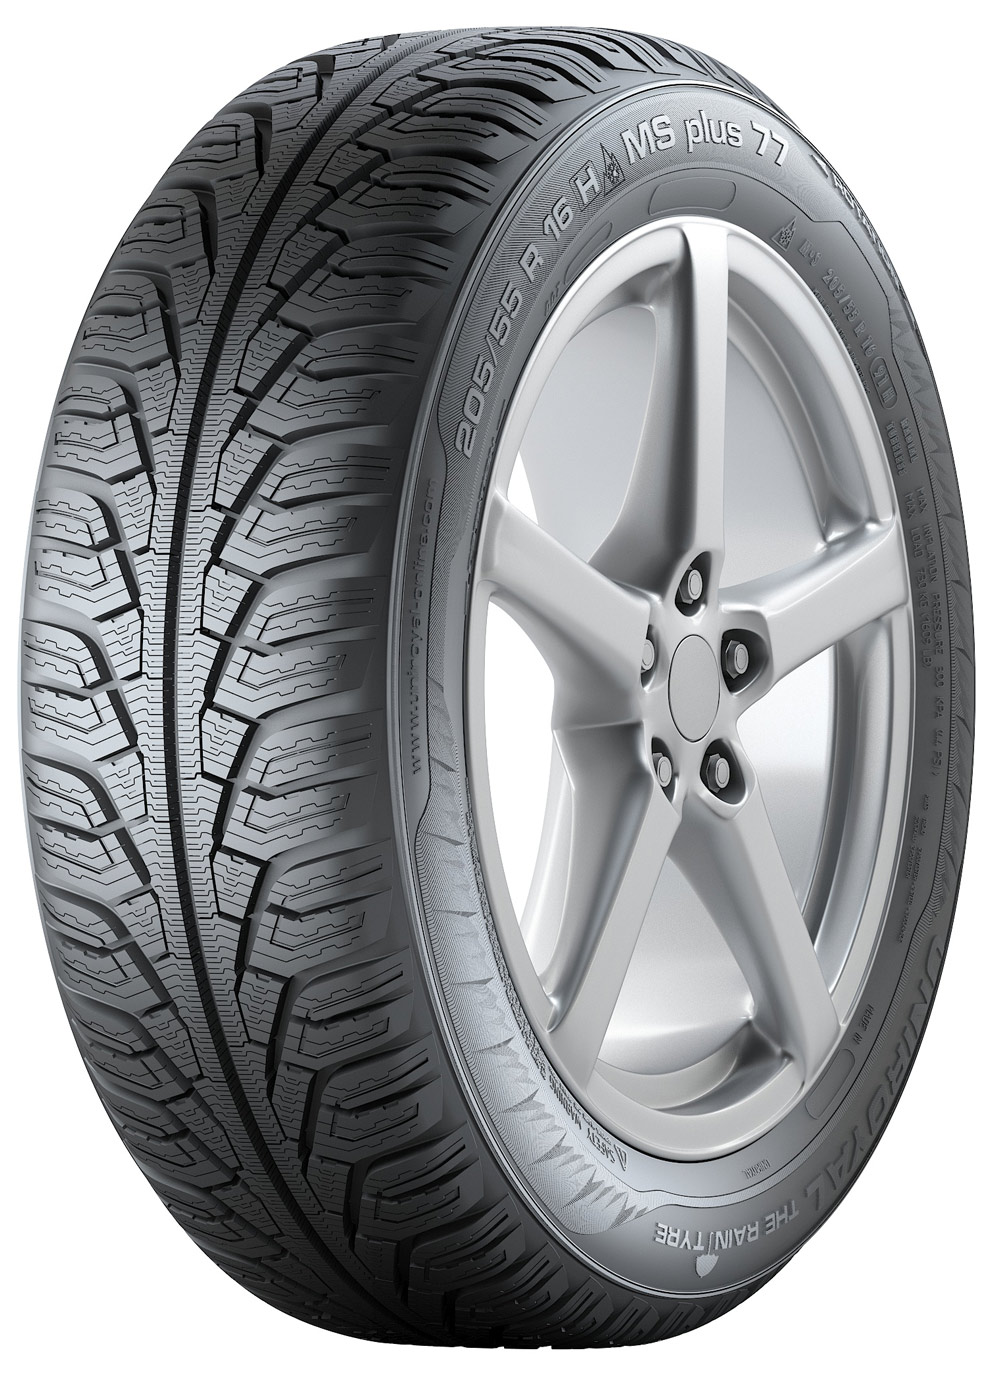 UNIROYAL MS PLUS 77 215/55 R 16